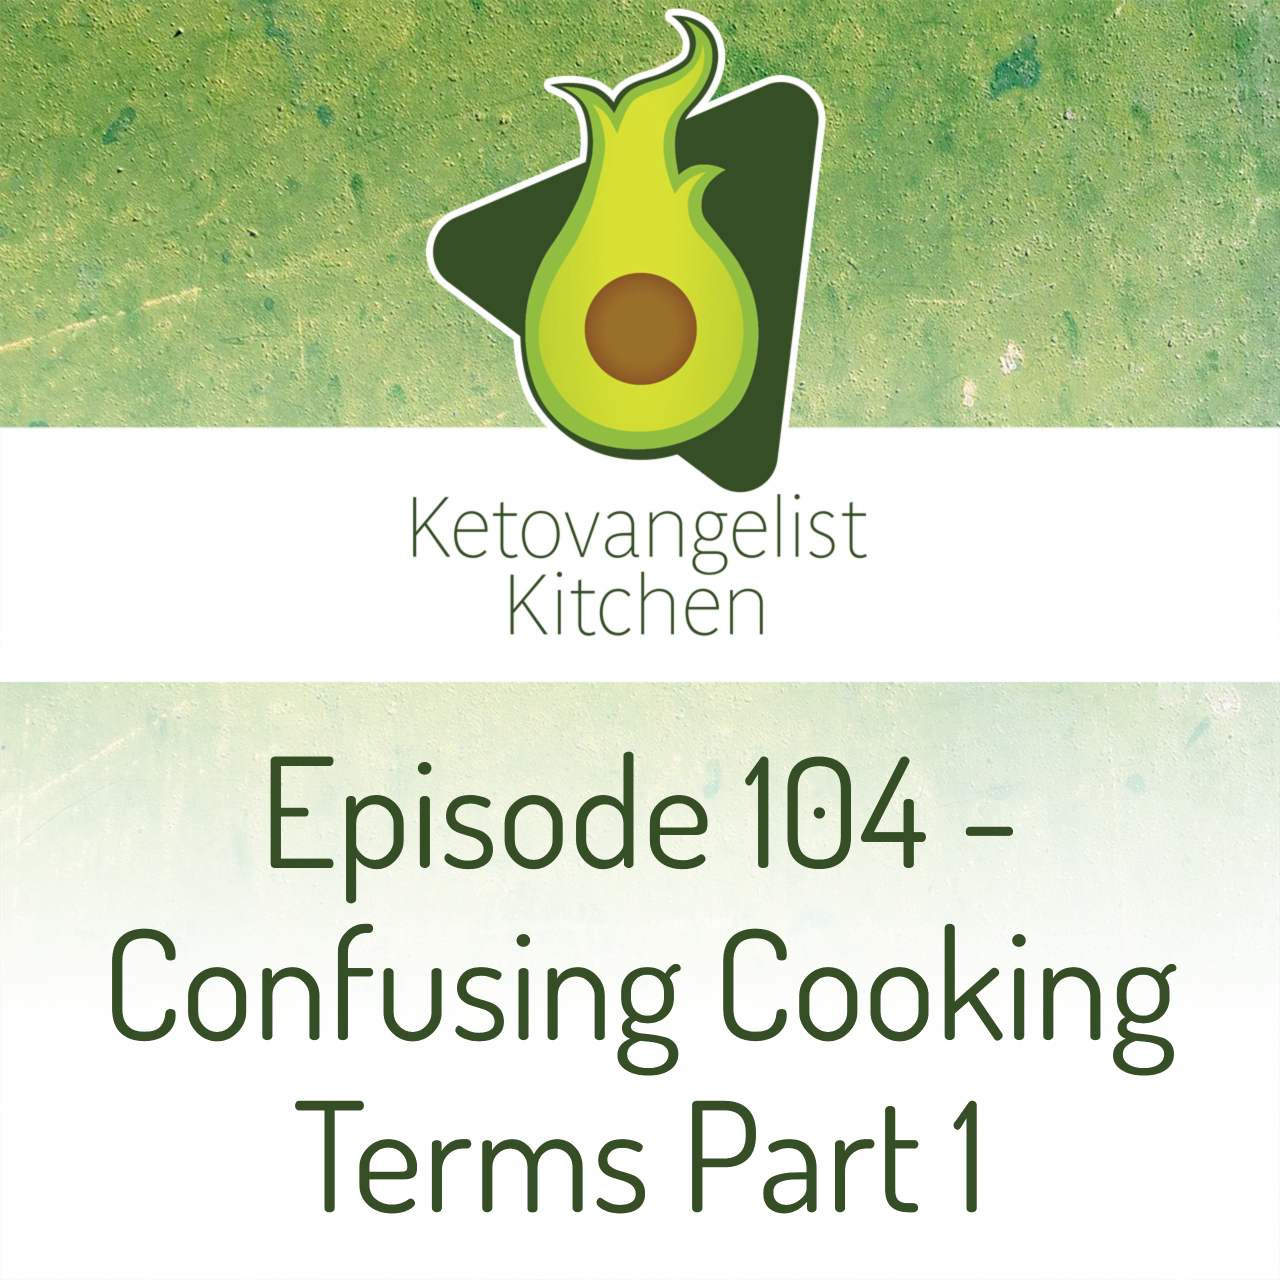 Episode 104 – Confusing Cooking Terms Part 1